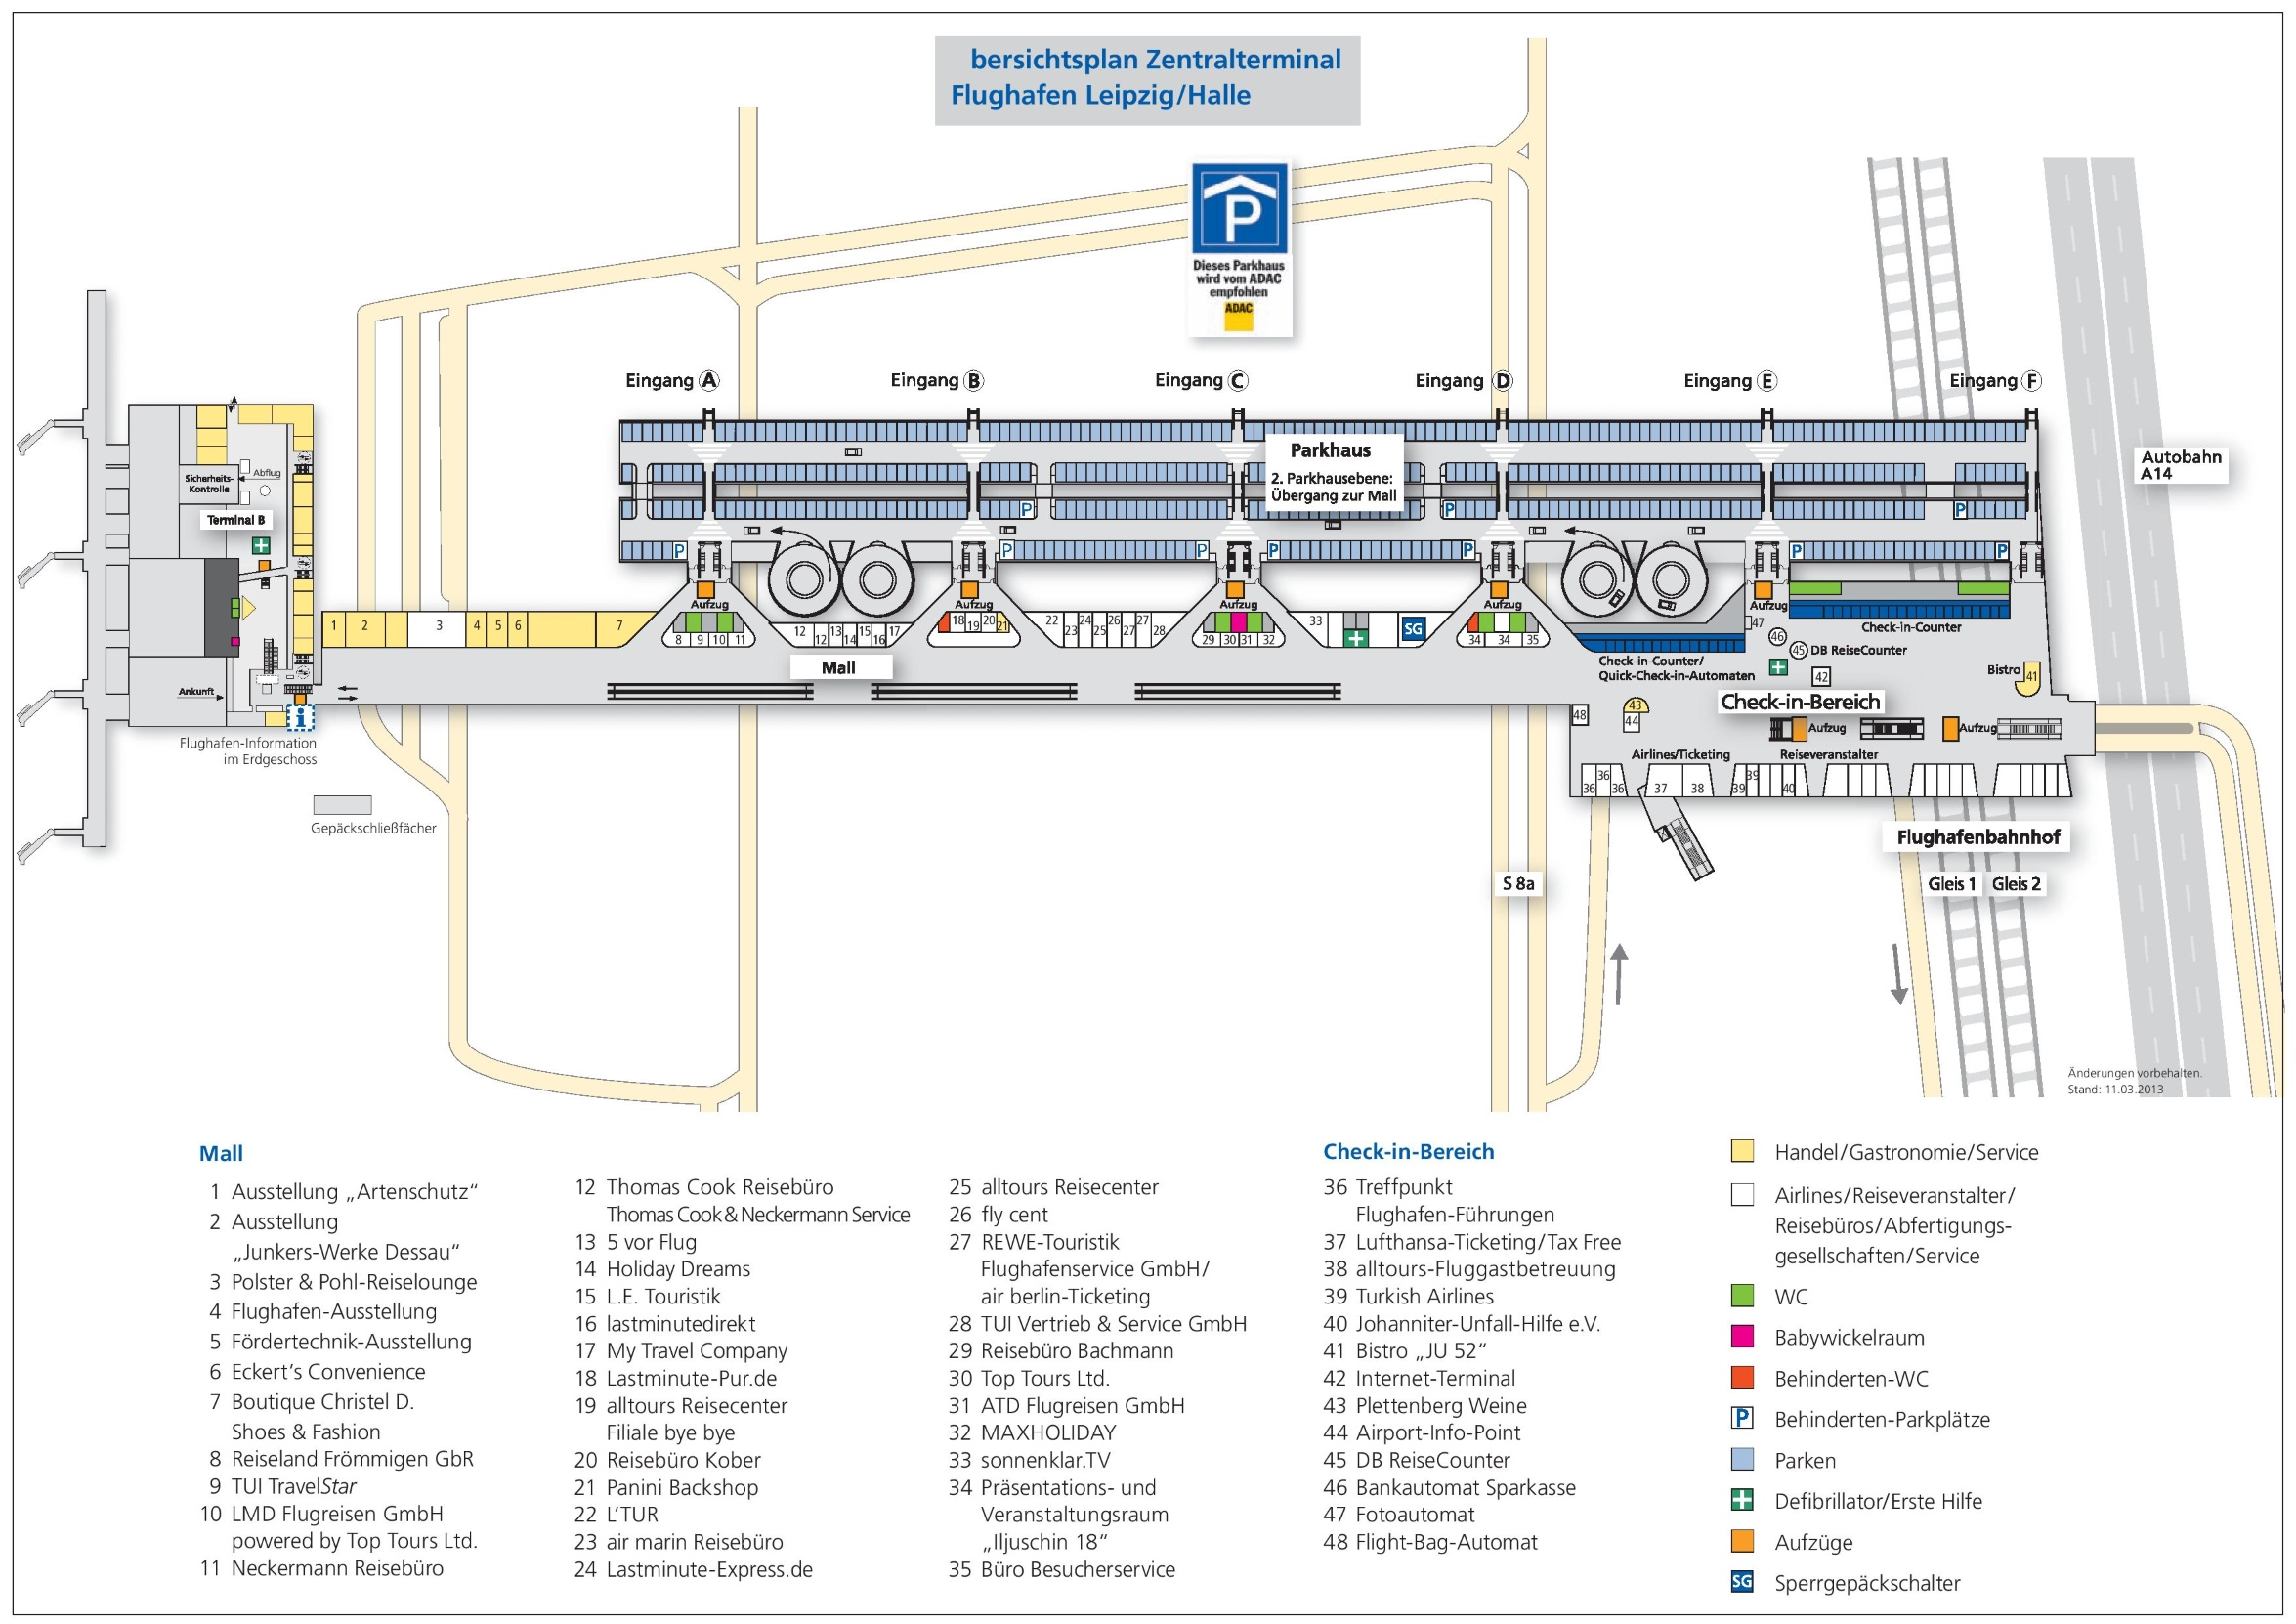 LeipzigHalle Airport map